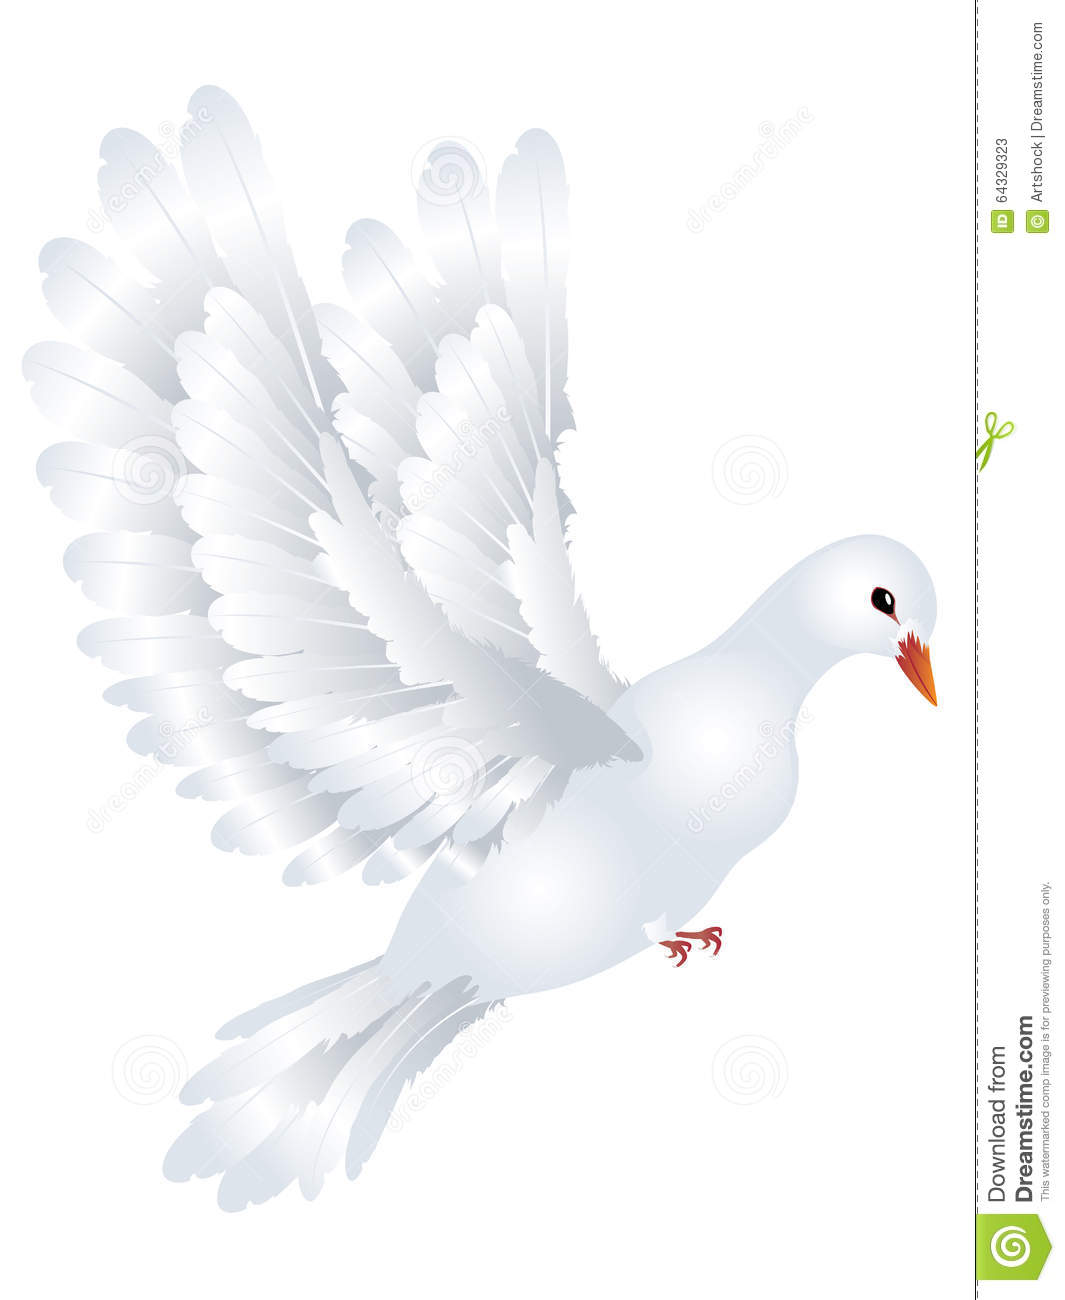 Pigeon illustration - photo#44